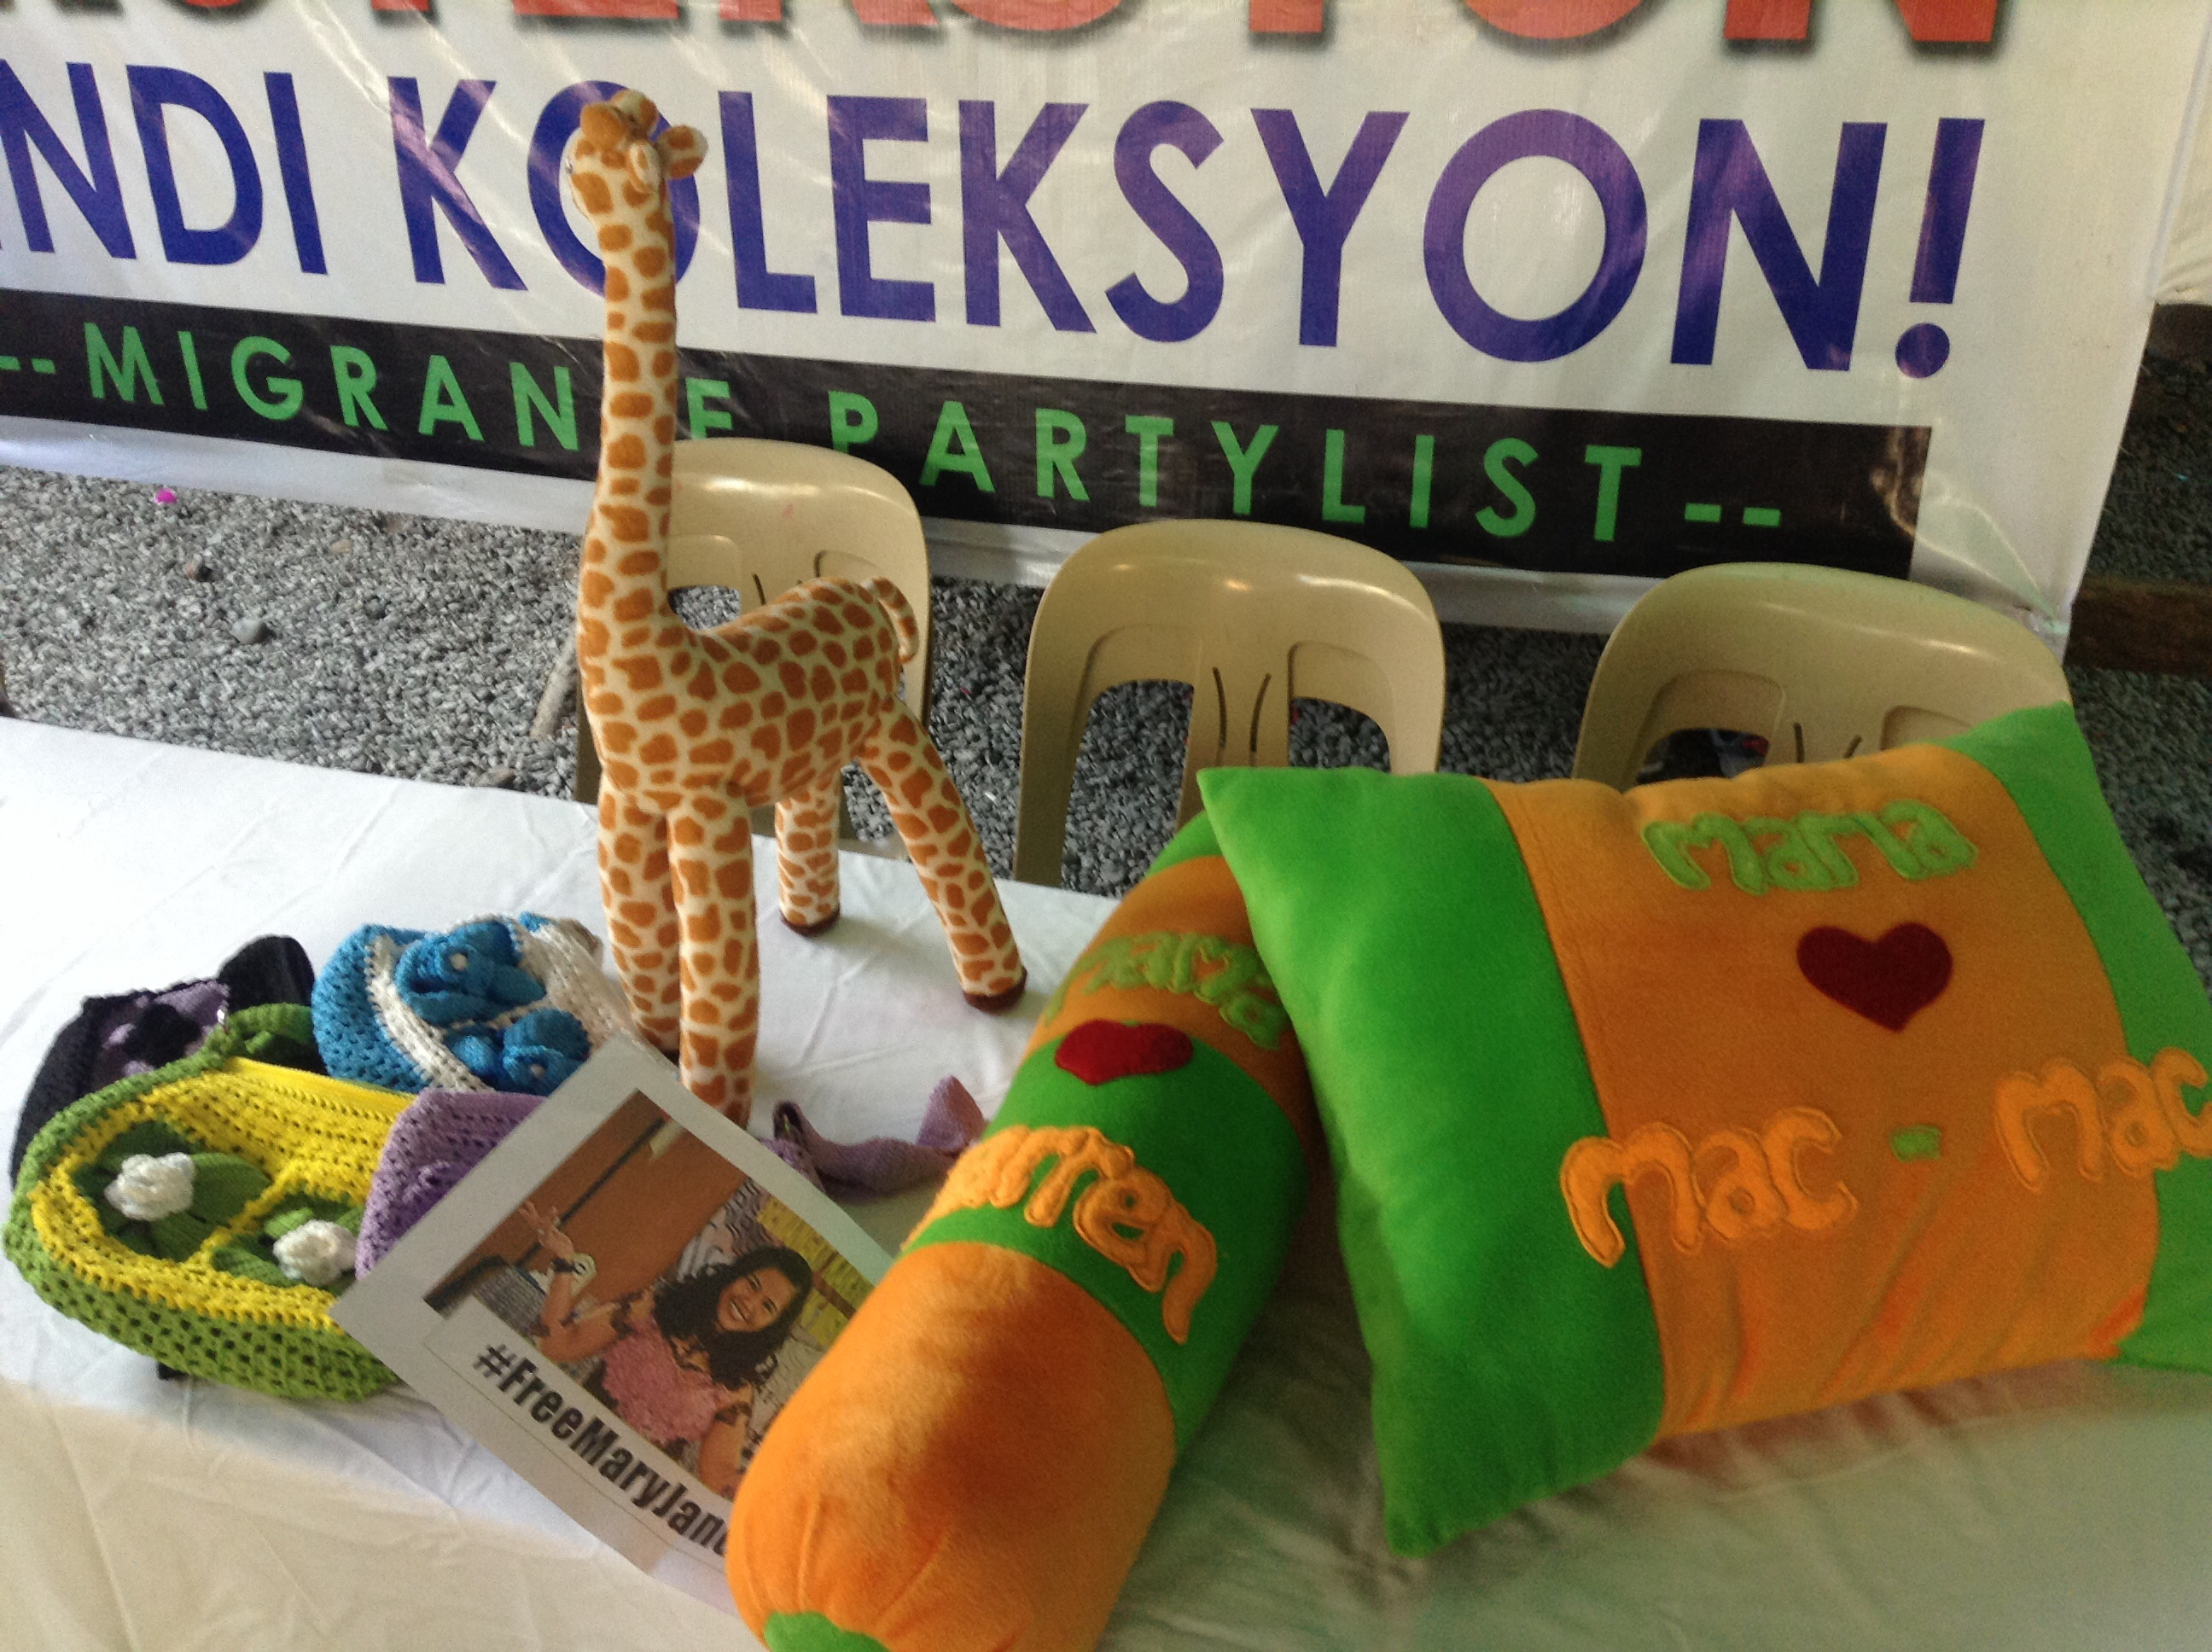 Pillows, crocheted bags and a stuffed toy made by Mary Jane. (Photo by J. Ellao / Bulatlat.com)